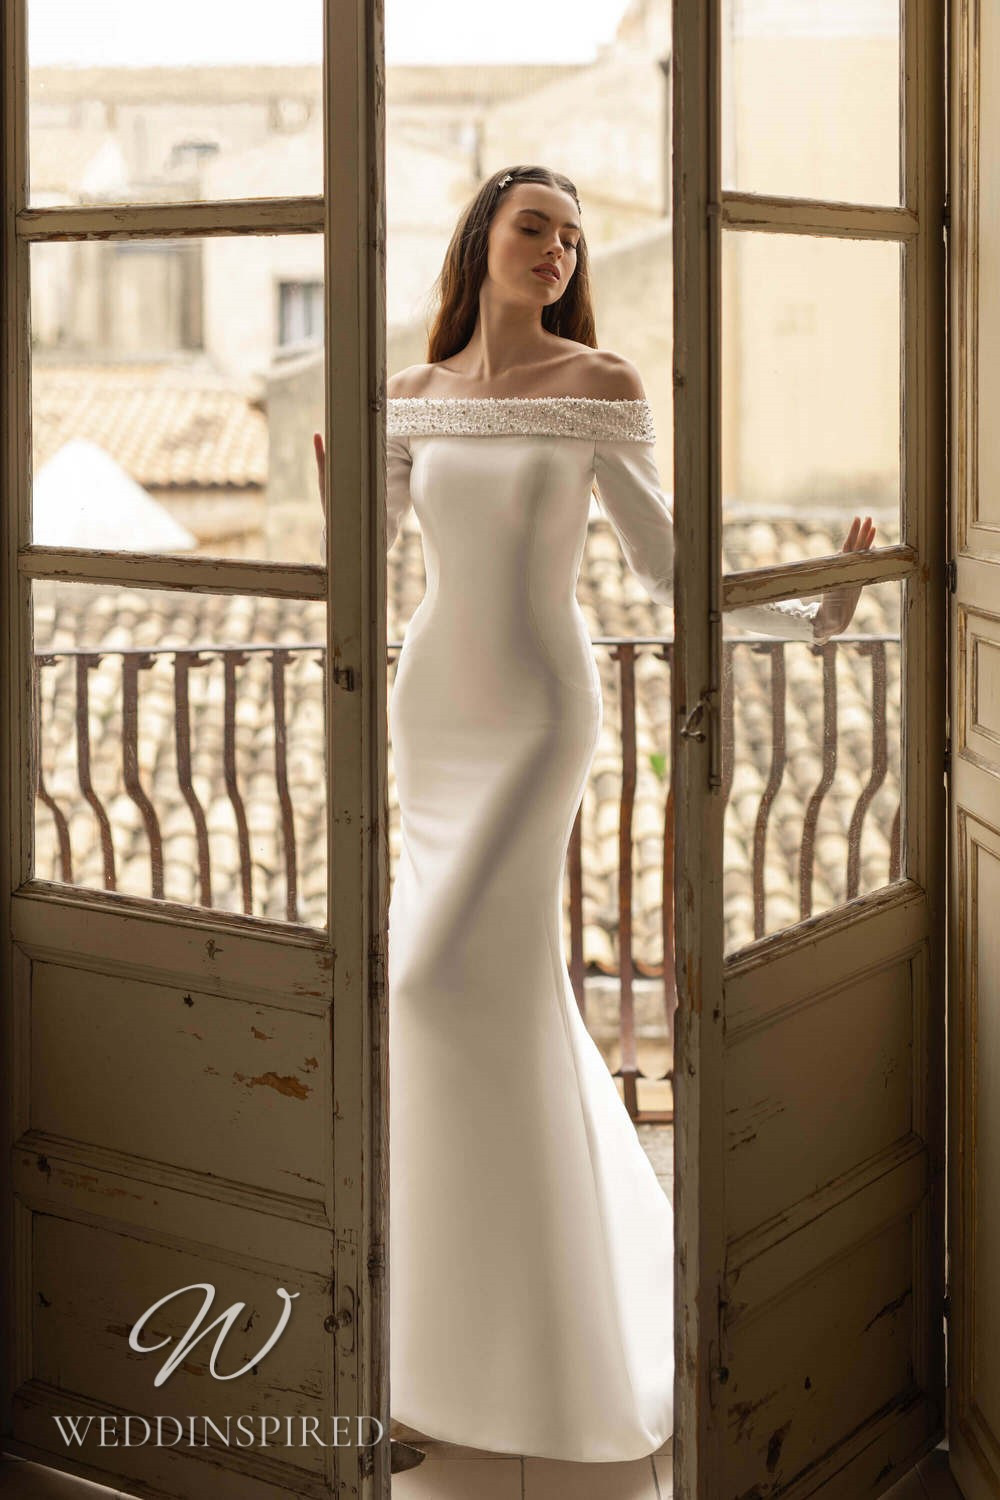 A Lussano 2021 off the shoulder satin mermaid wedding dress with long sleeves